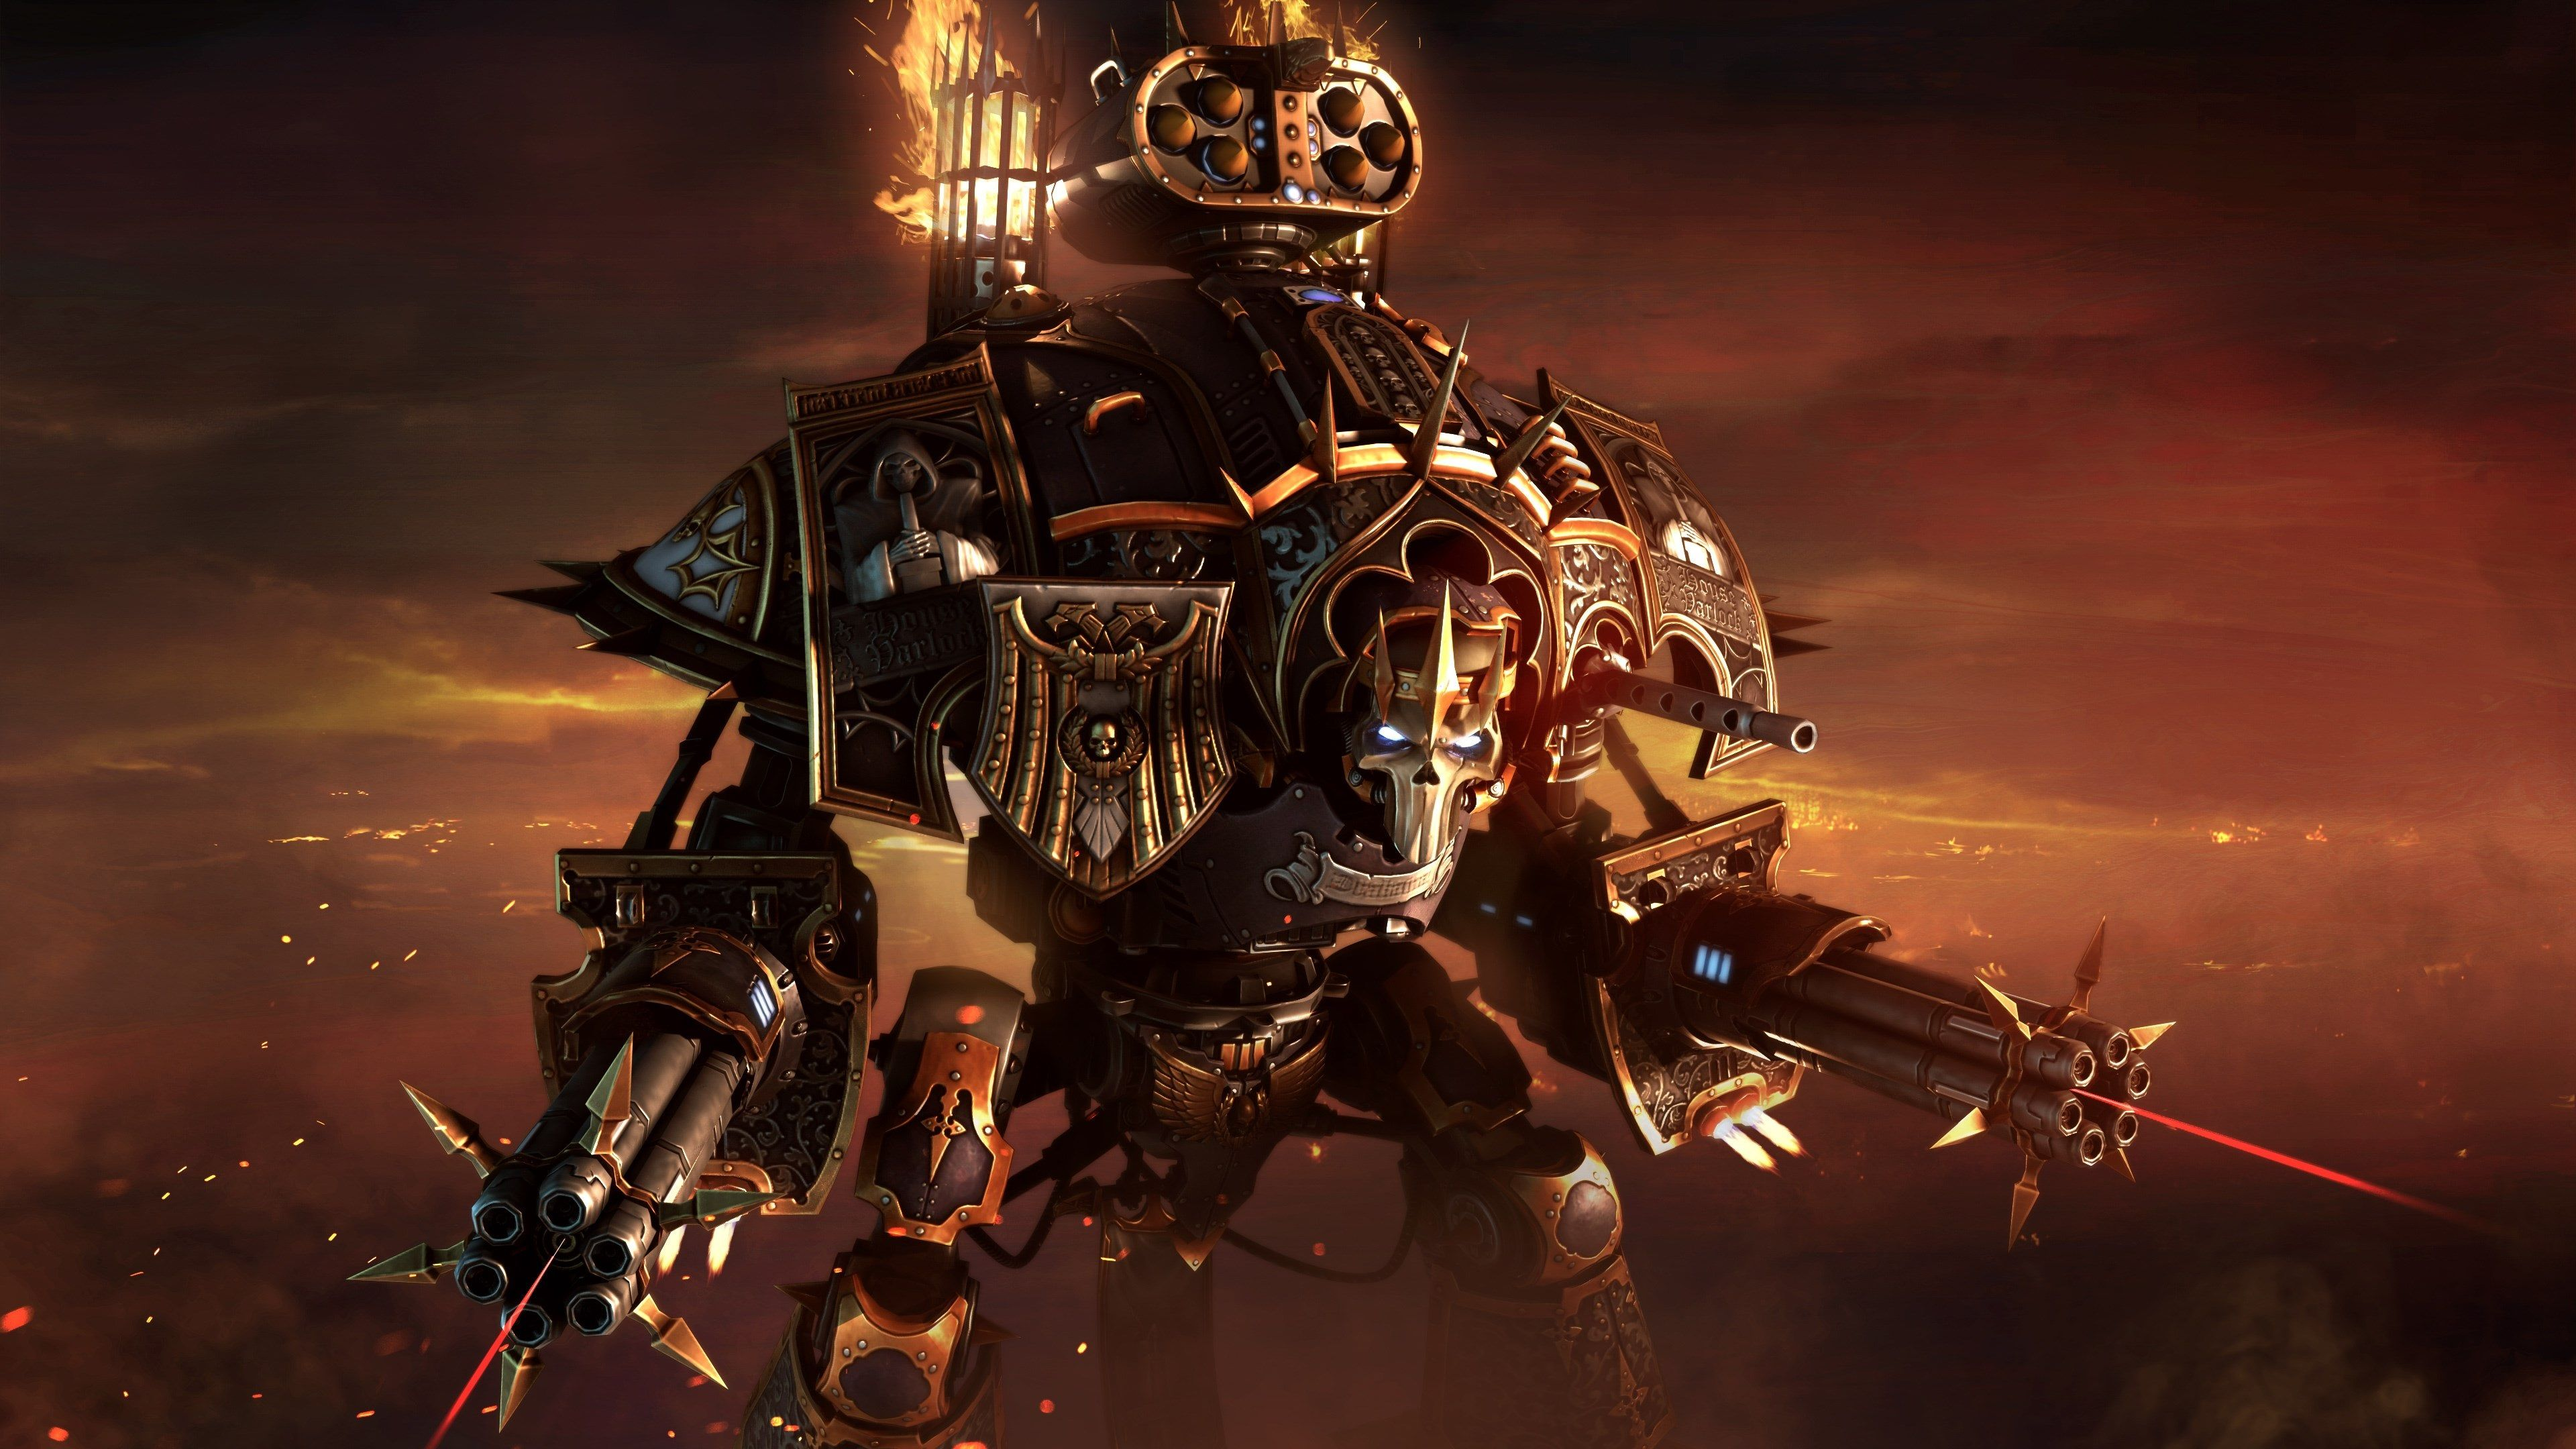 3840x2160 Warhammer 40k 4k Free High Resolution Desktop Wallpaper Warhammer 40k Warhammer Warhammer 40000